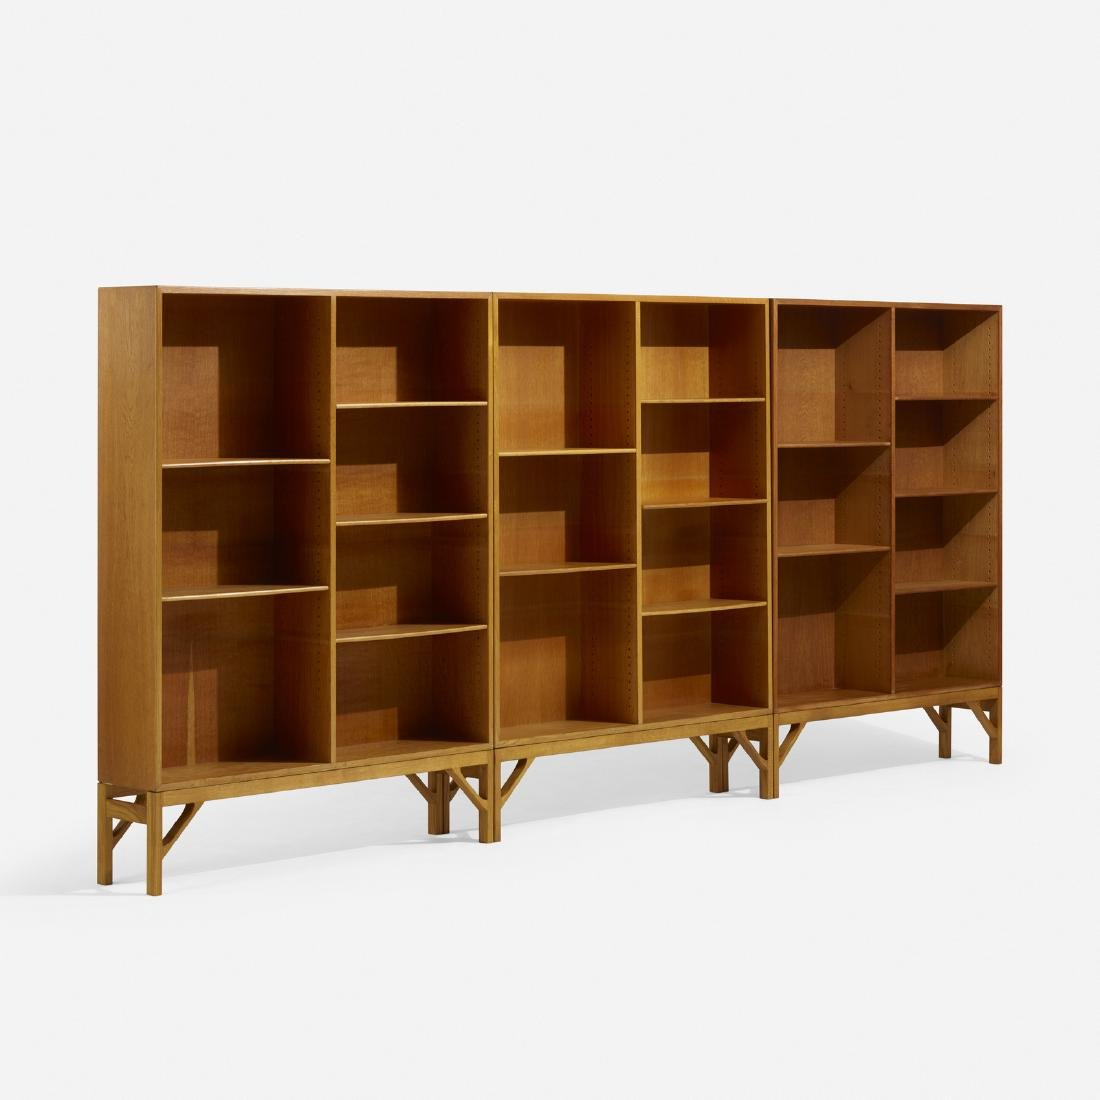 Borge Mogensen, bookcases, set of three